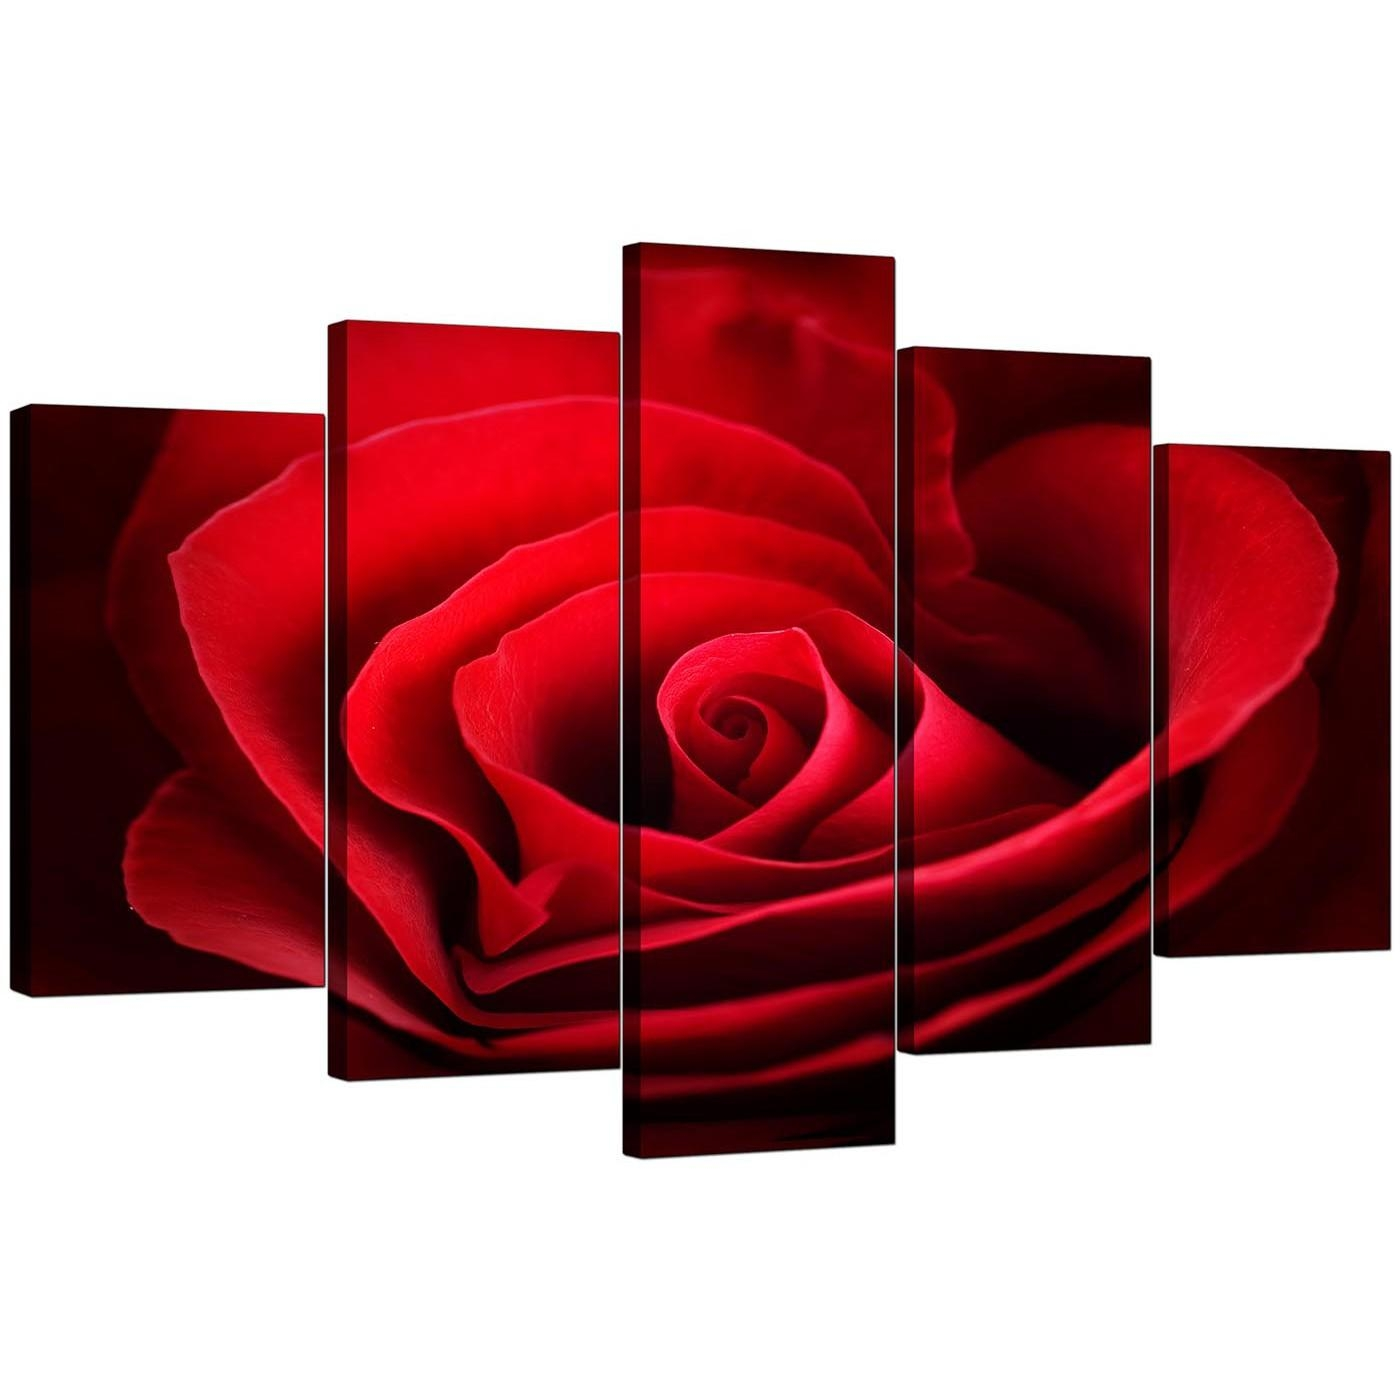 Extra Large Rose Canvas Wall Art 5 Panel In Red Within Red Rose Wall Art (Image 11 of 20)